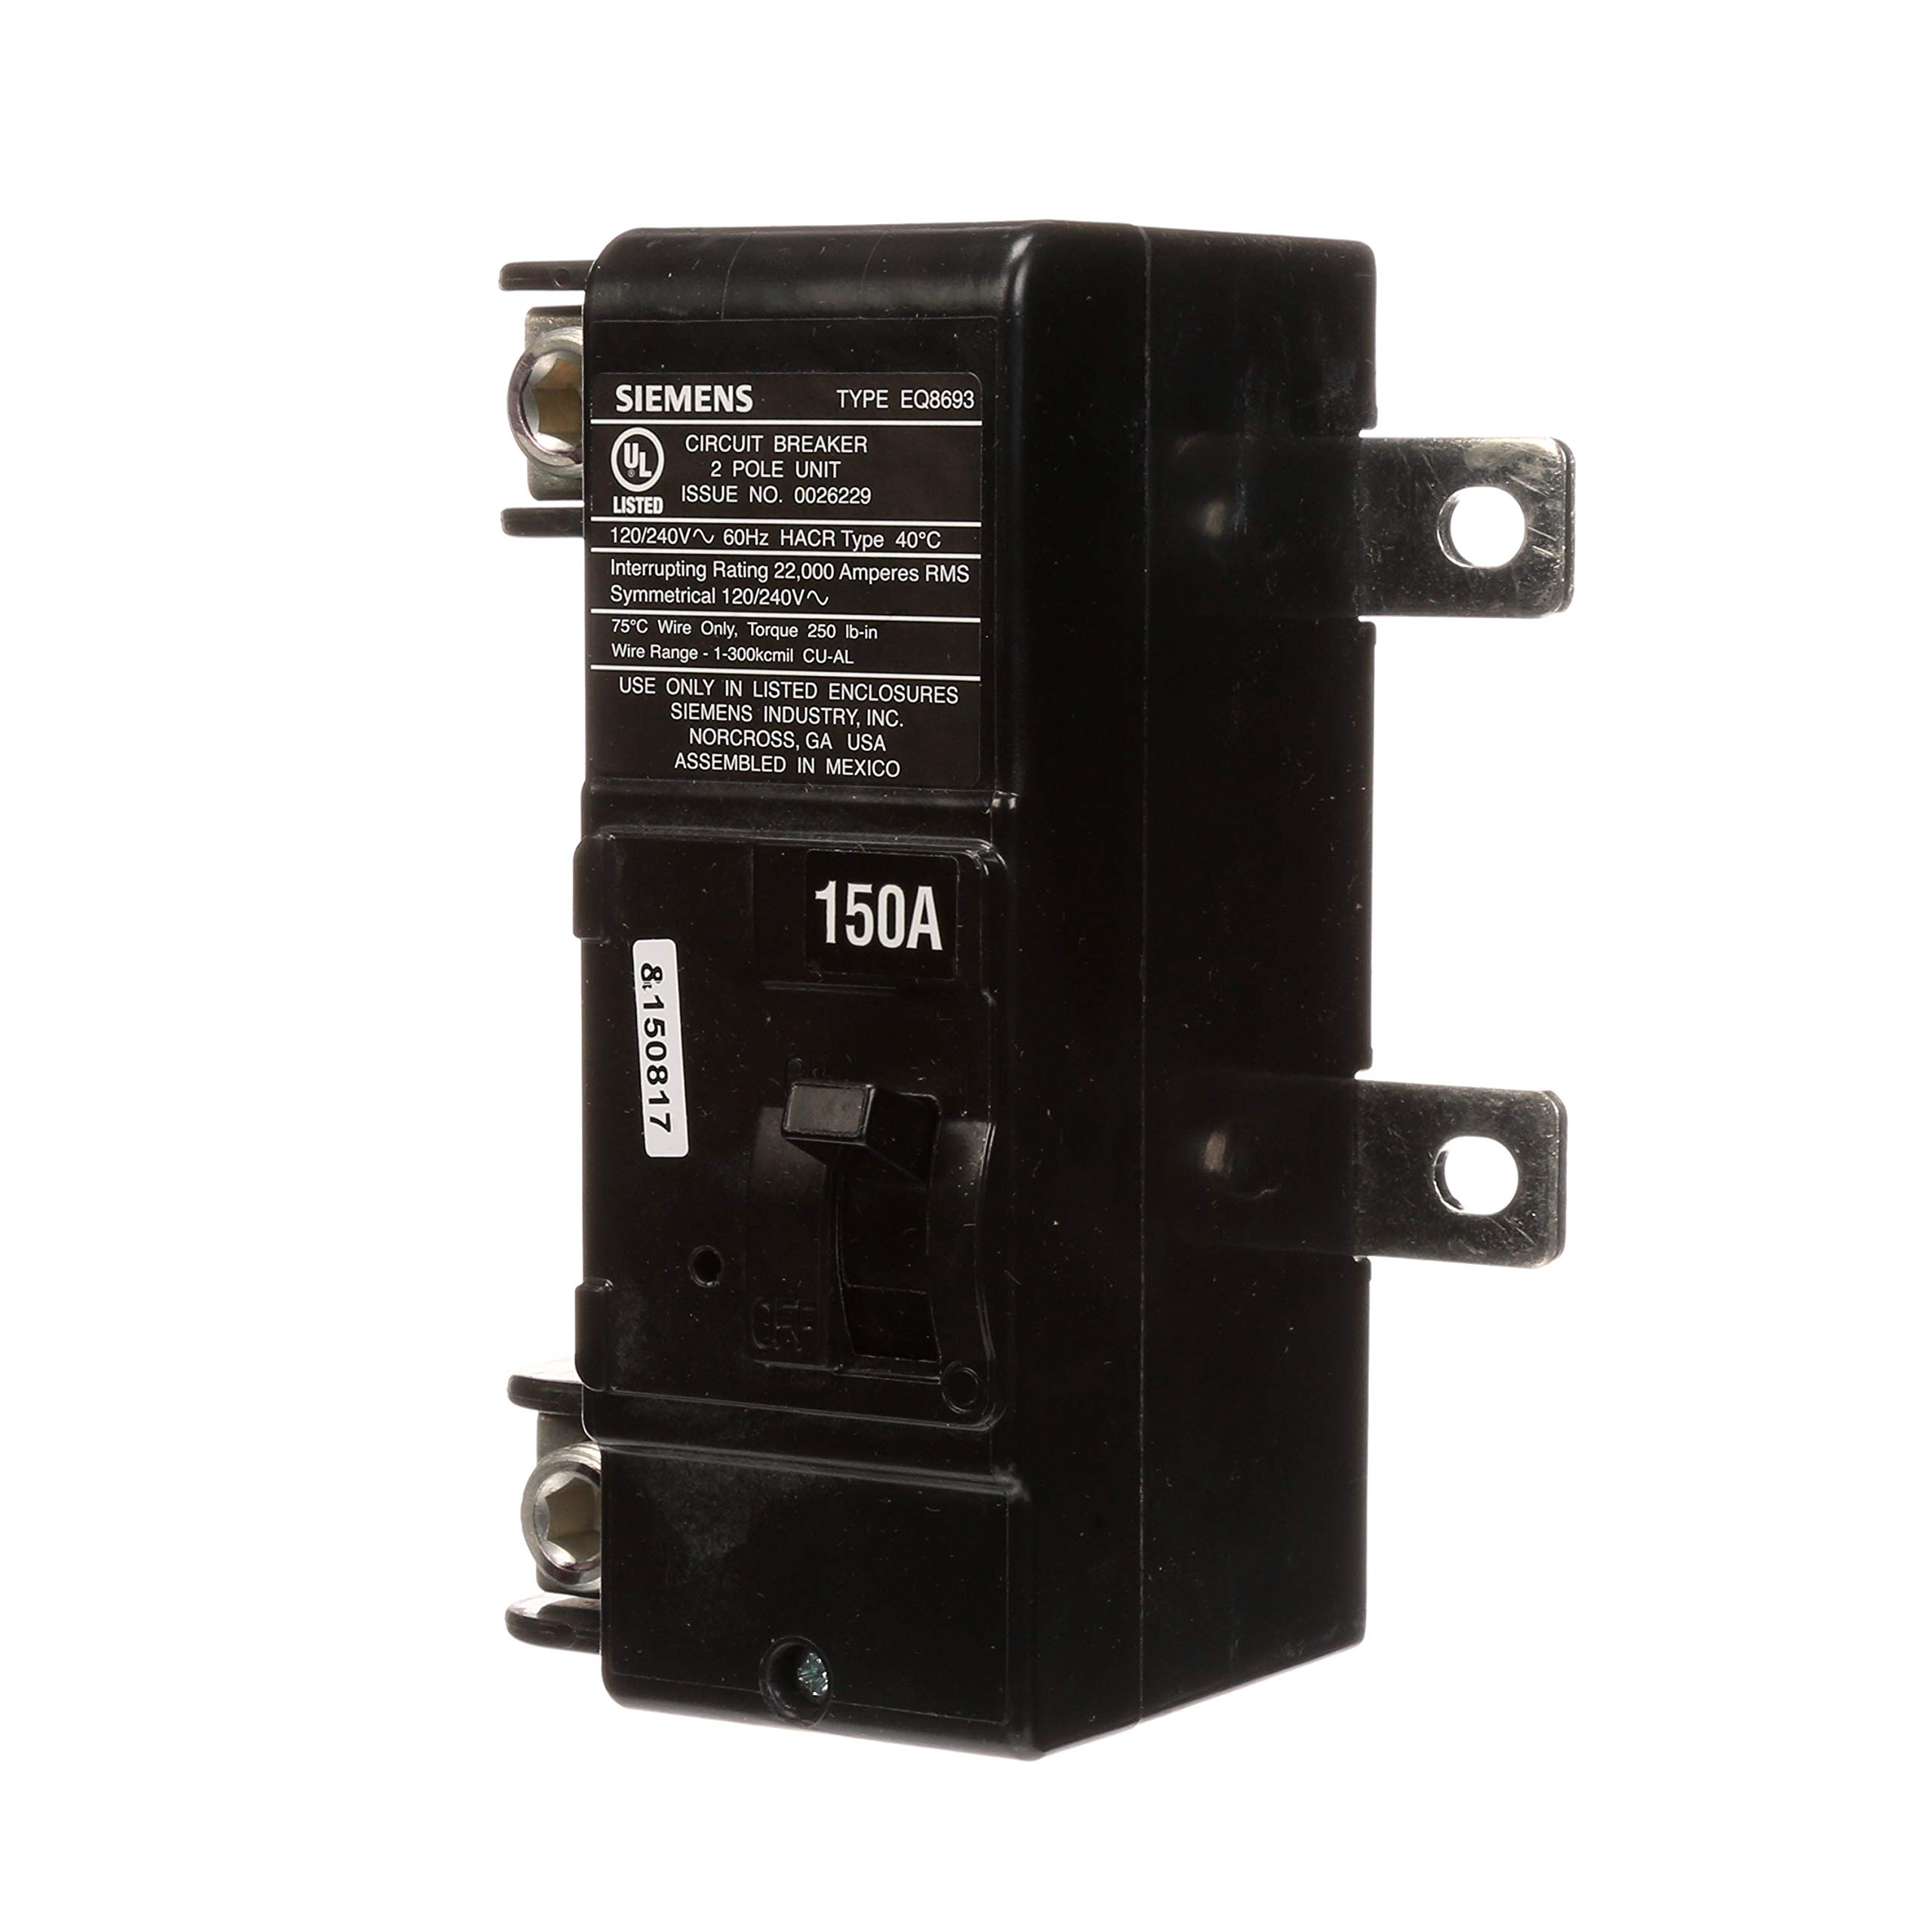 Siemens MBK150A 150-Amp Main Circuit Breaker for Use in Ultimate Type Load Centers by SIEMENS